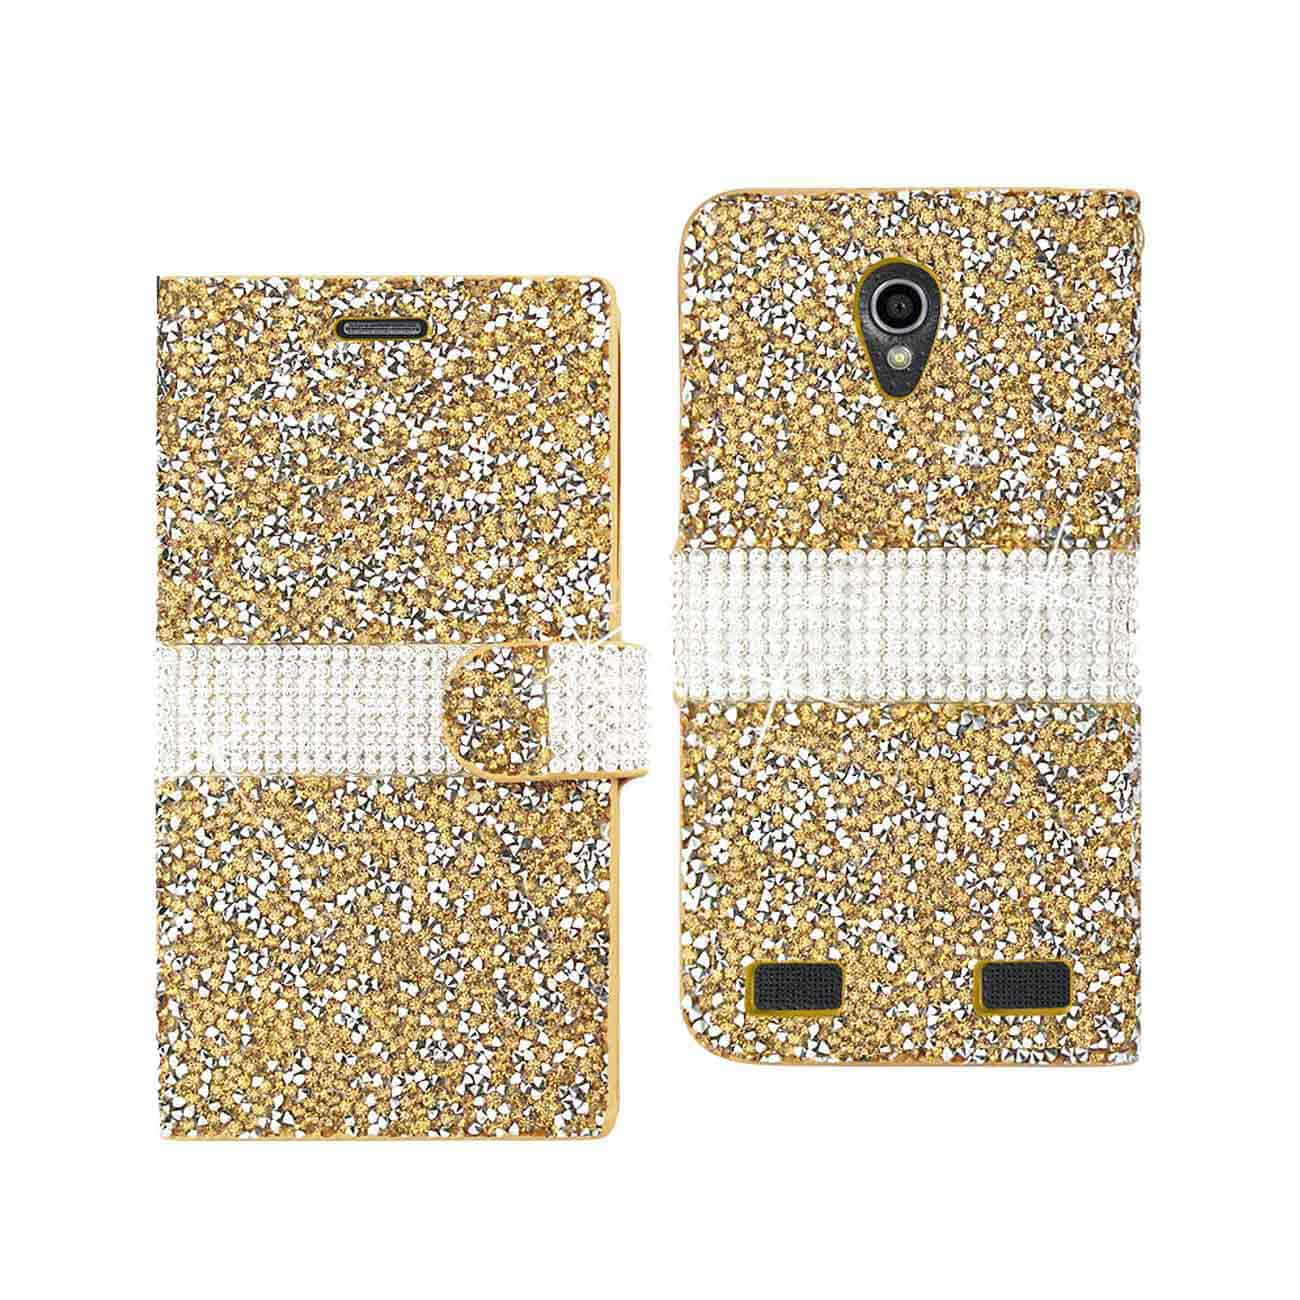 ZTE ZMAX 2 JEWELRY RHINESTONE WALLET CASE IN GOLD